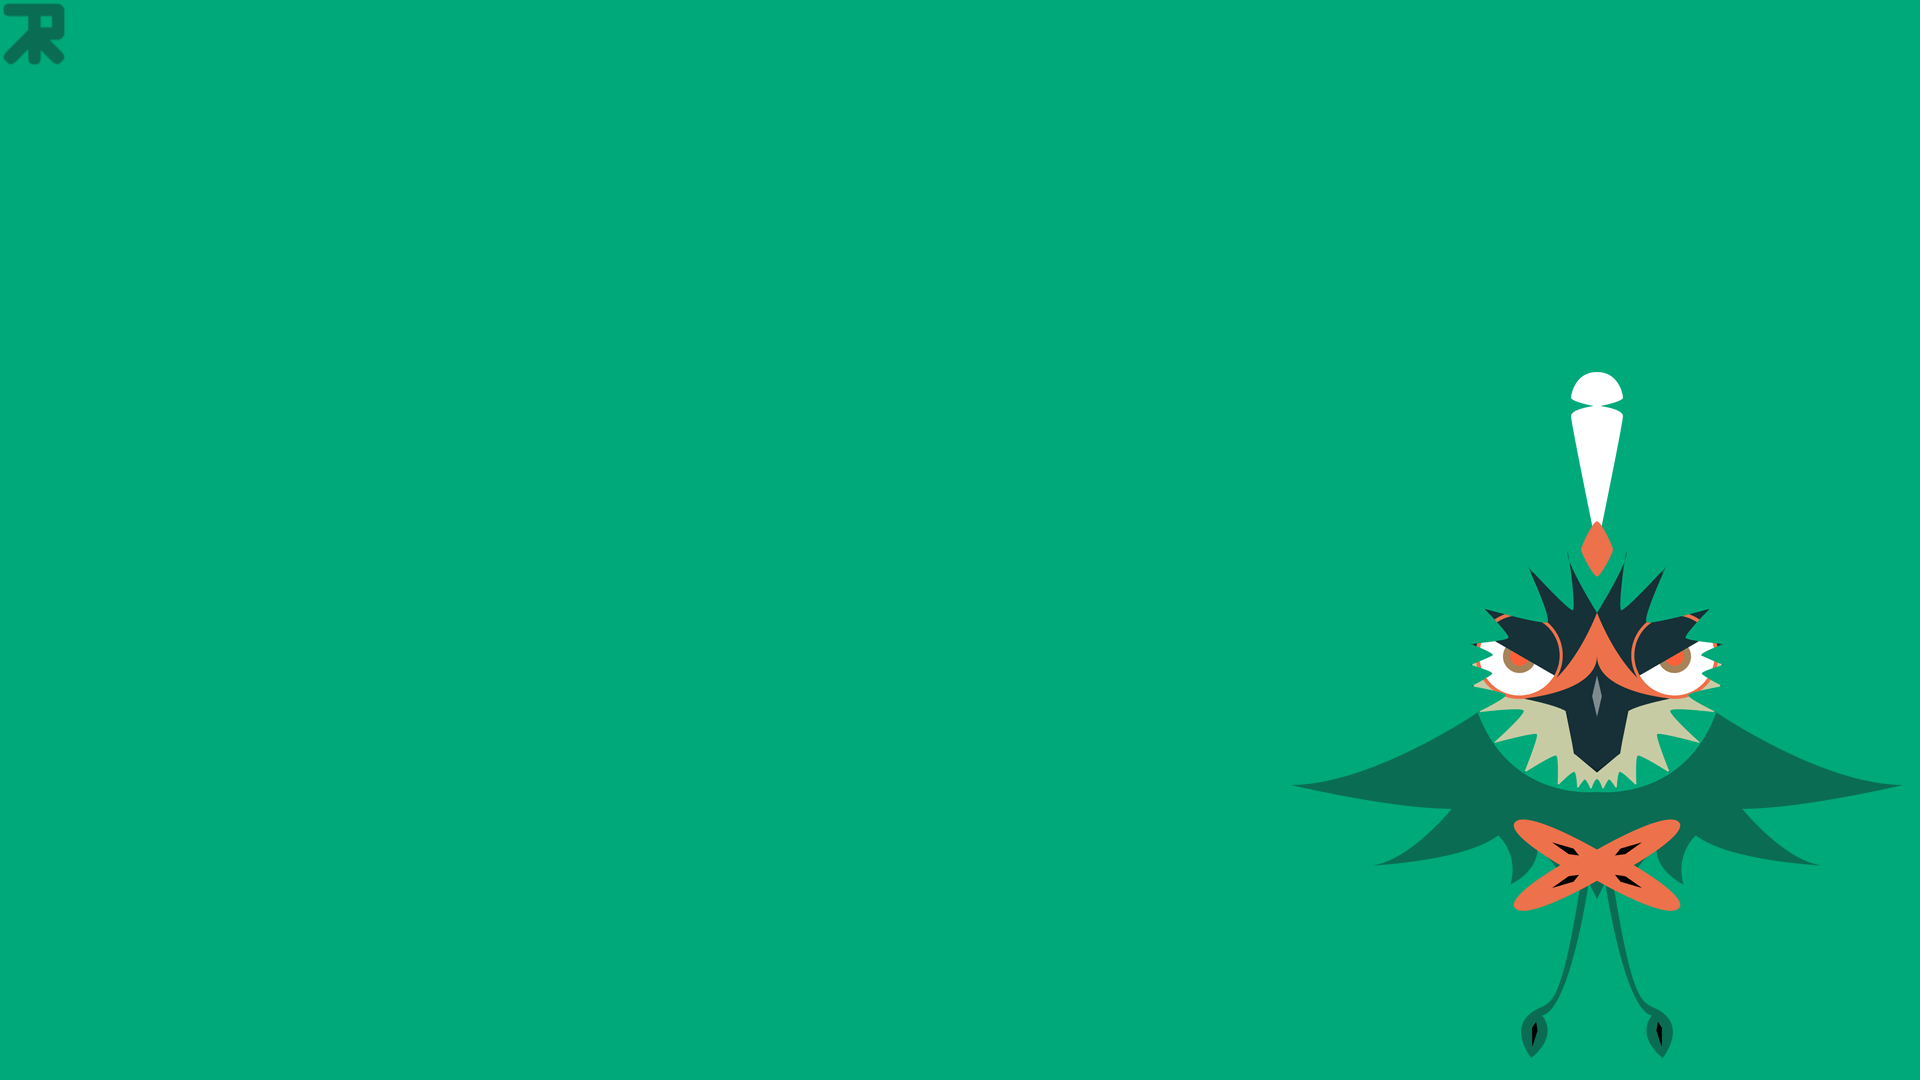 Since everybody likes Decidueye so much, i decided to make a free